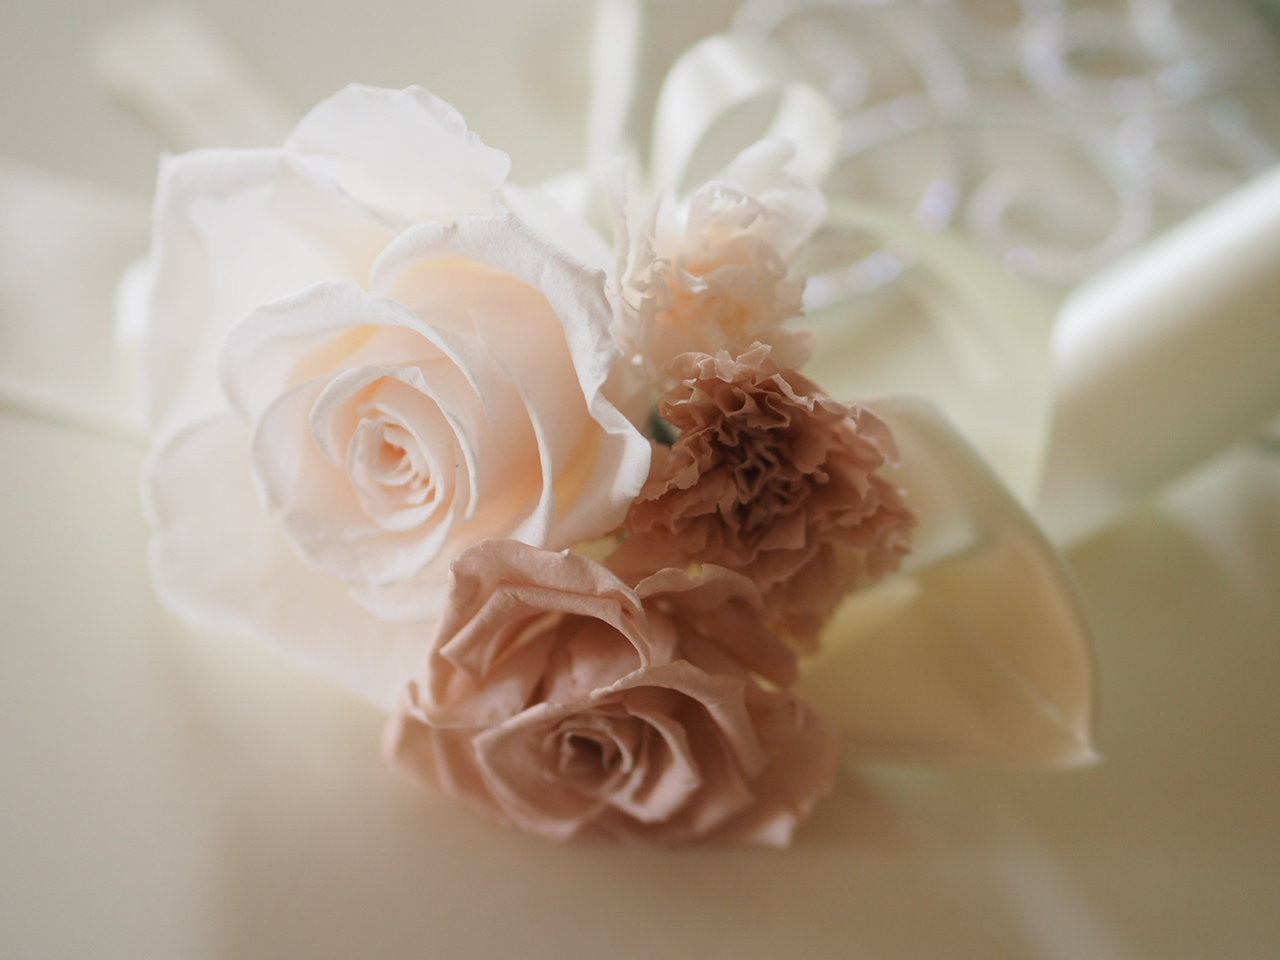 流行色でのwedding bouquet_d0144095_21315913.jpg